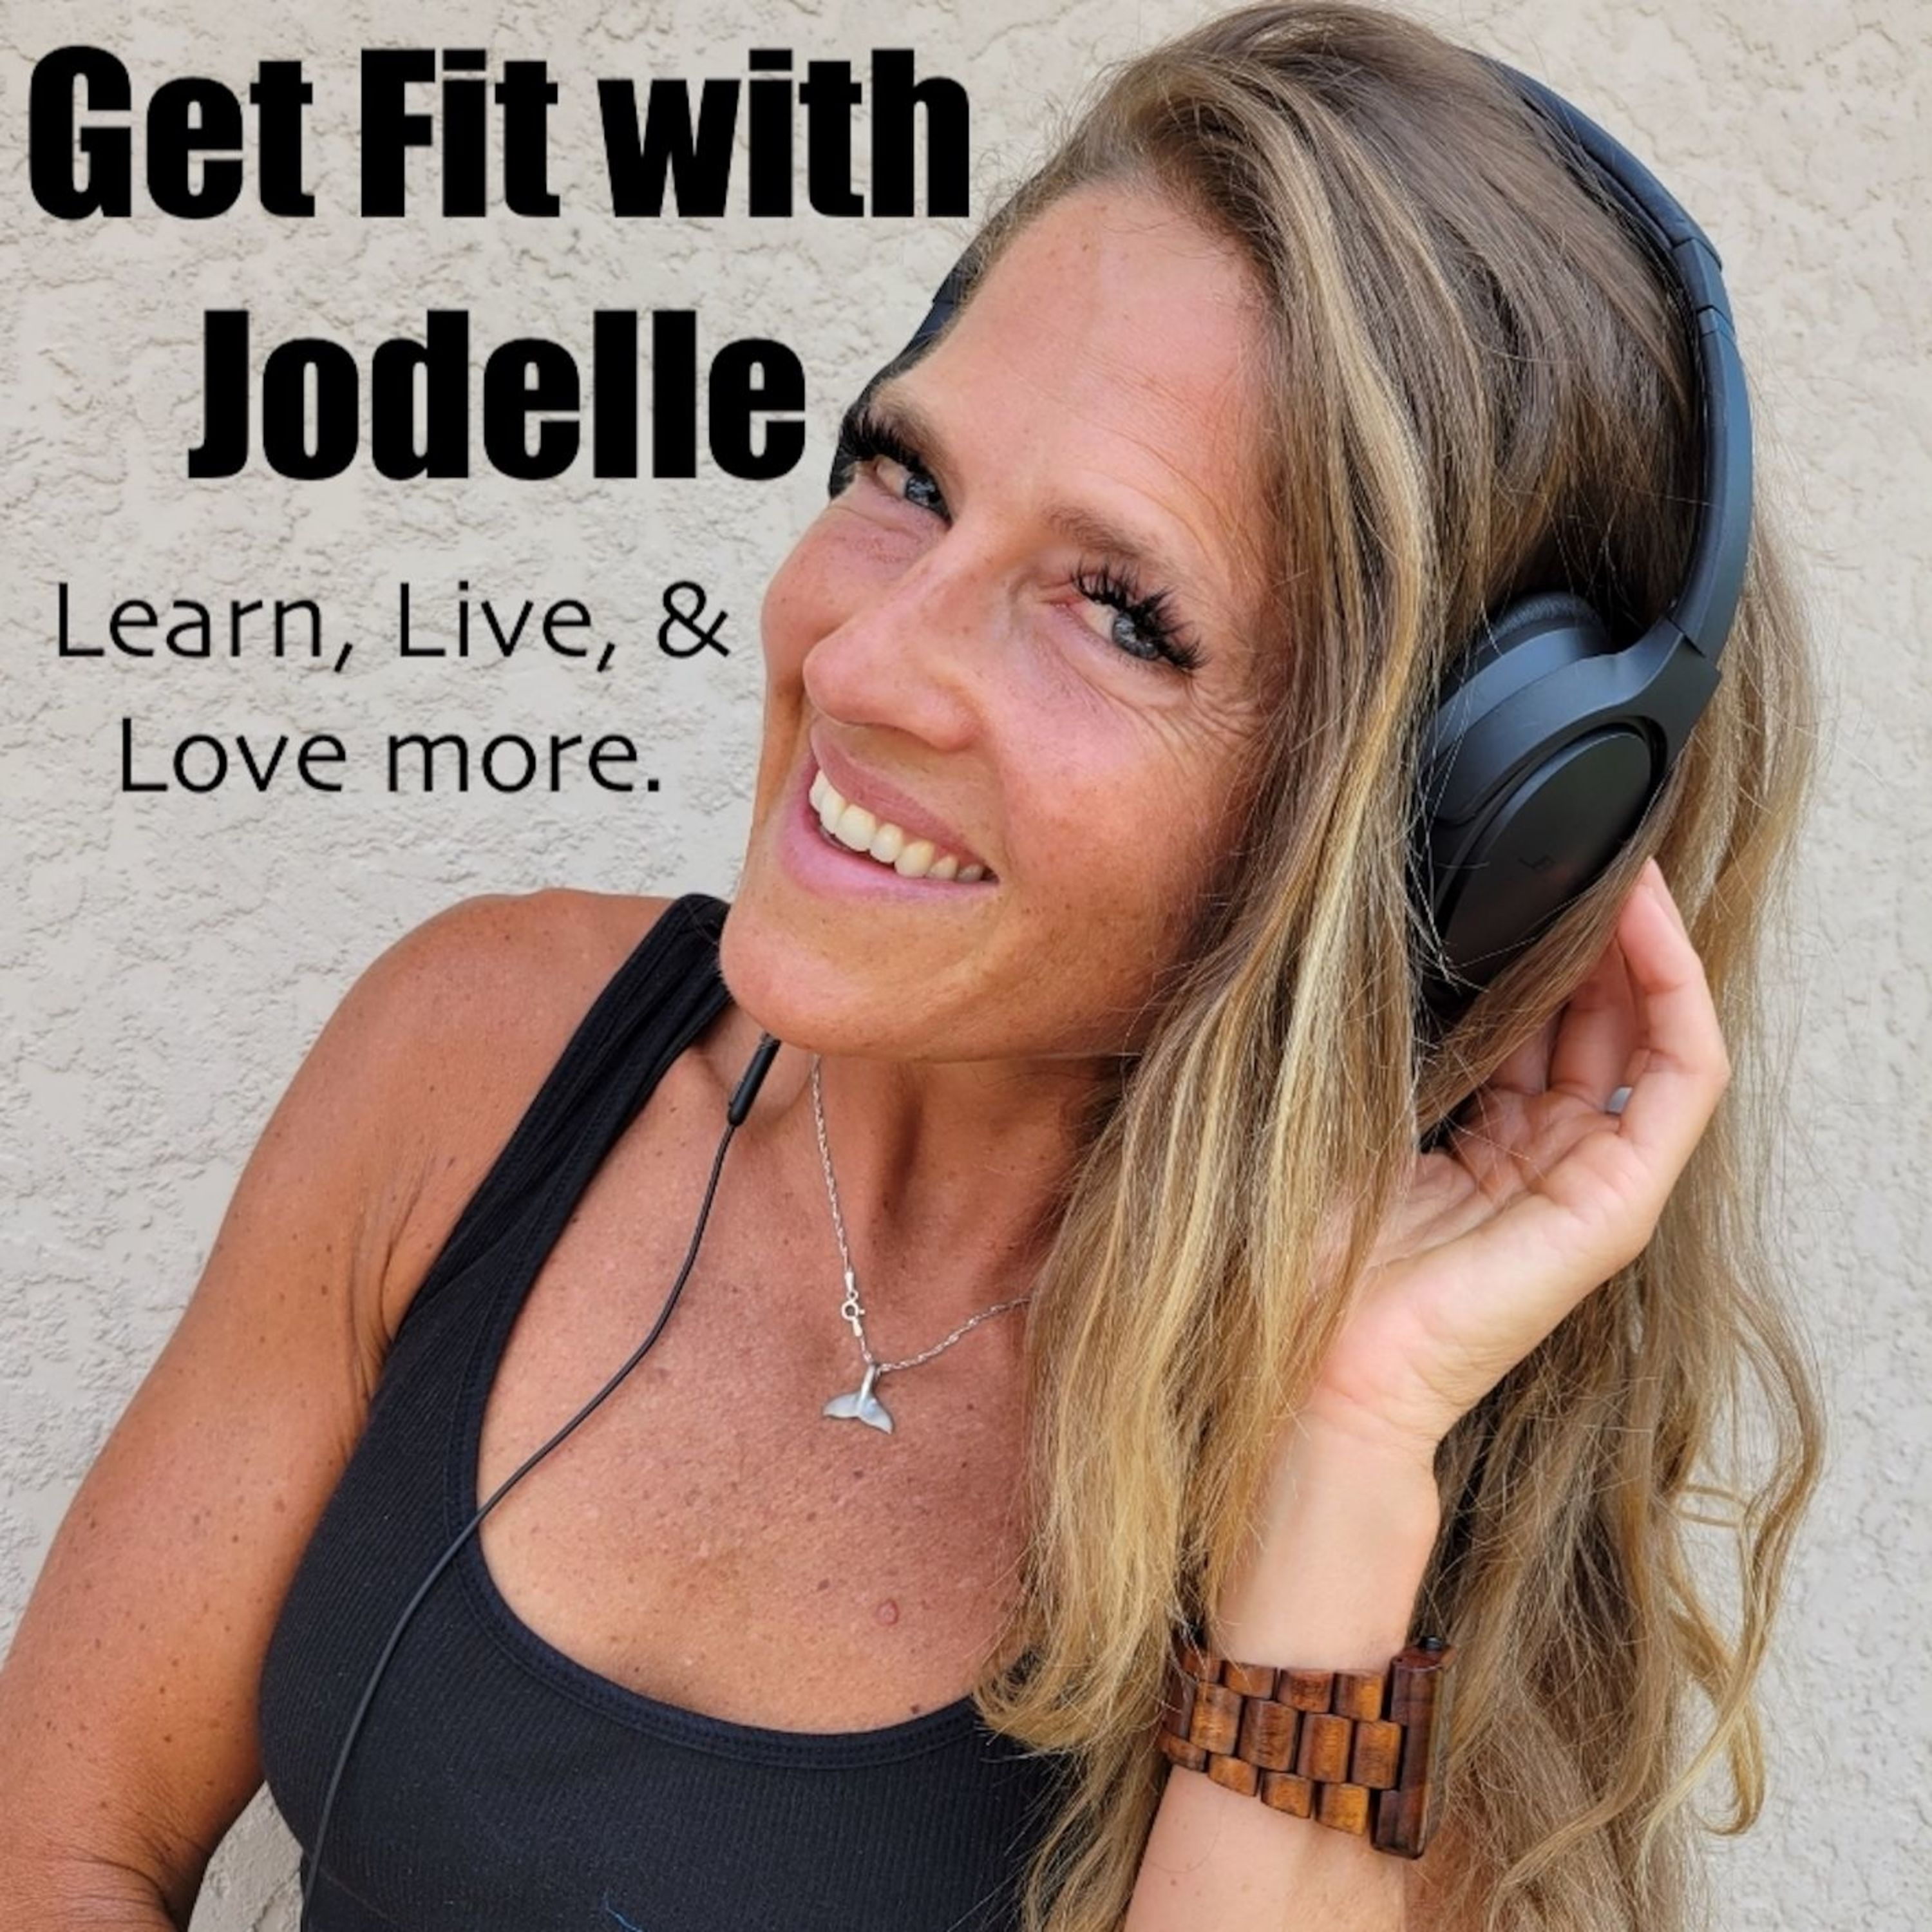 <![CDATA[Get Fit with Jodelle]]>